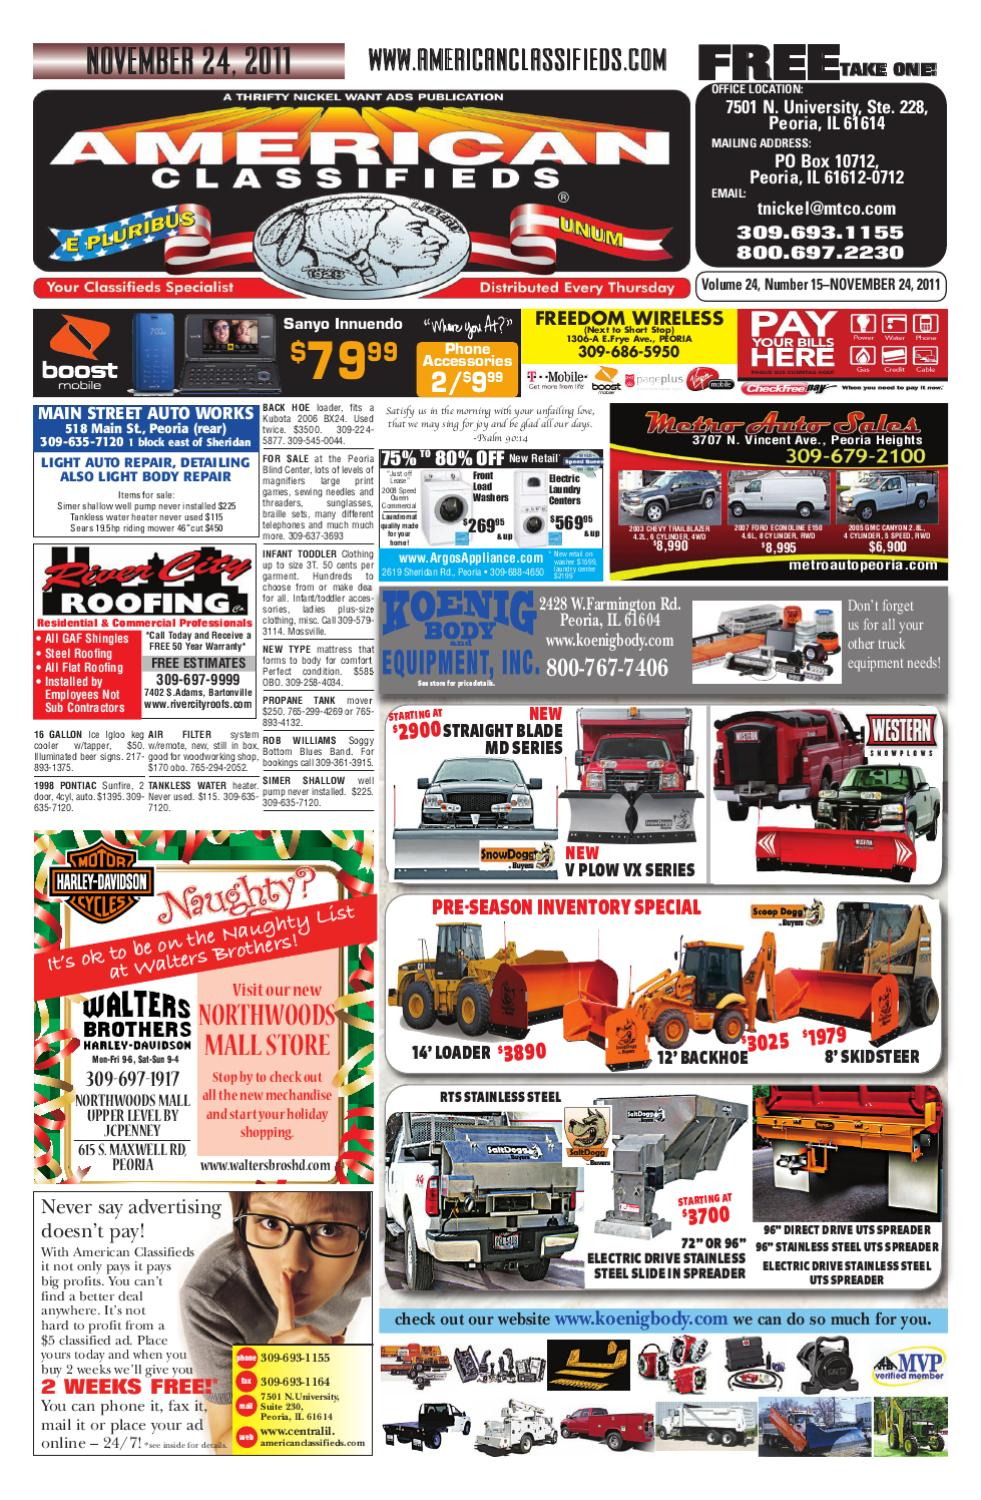 American classifieds november 24 2011 peoria il by american classifieds issuu